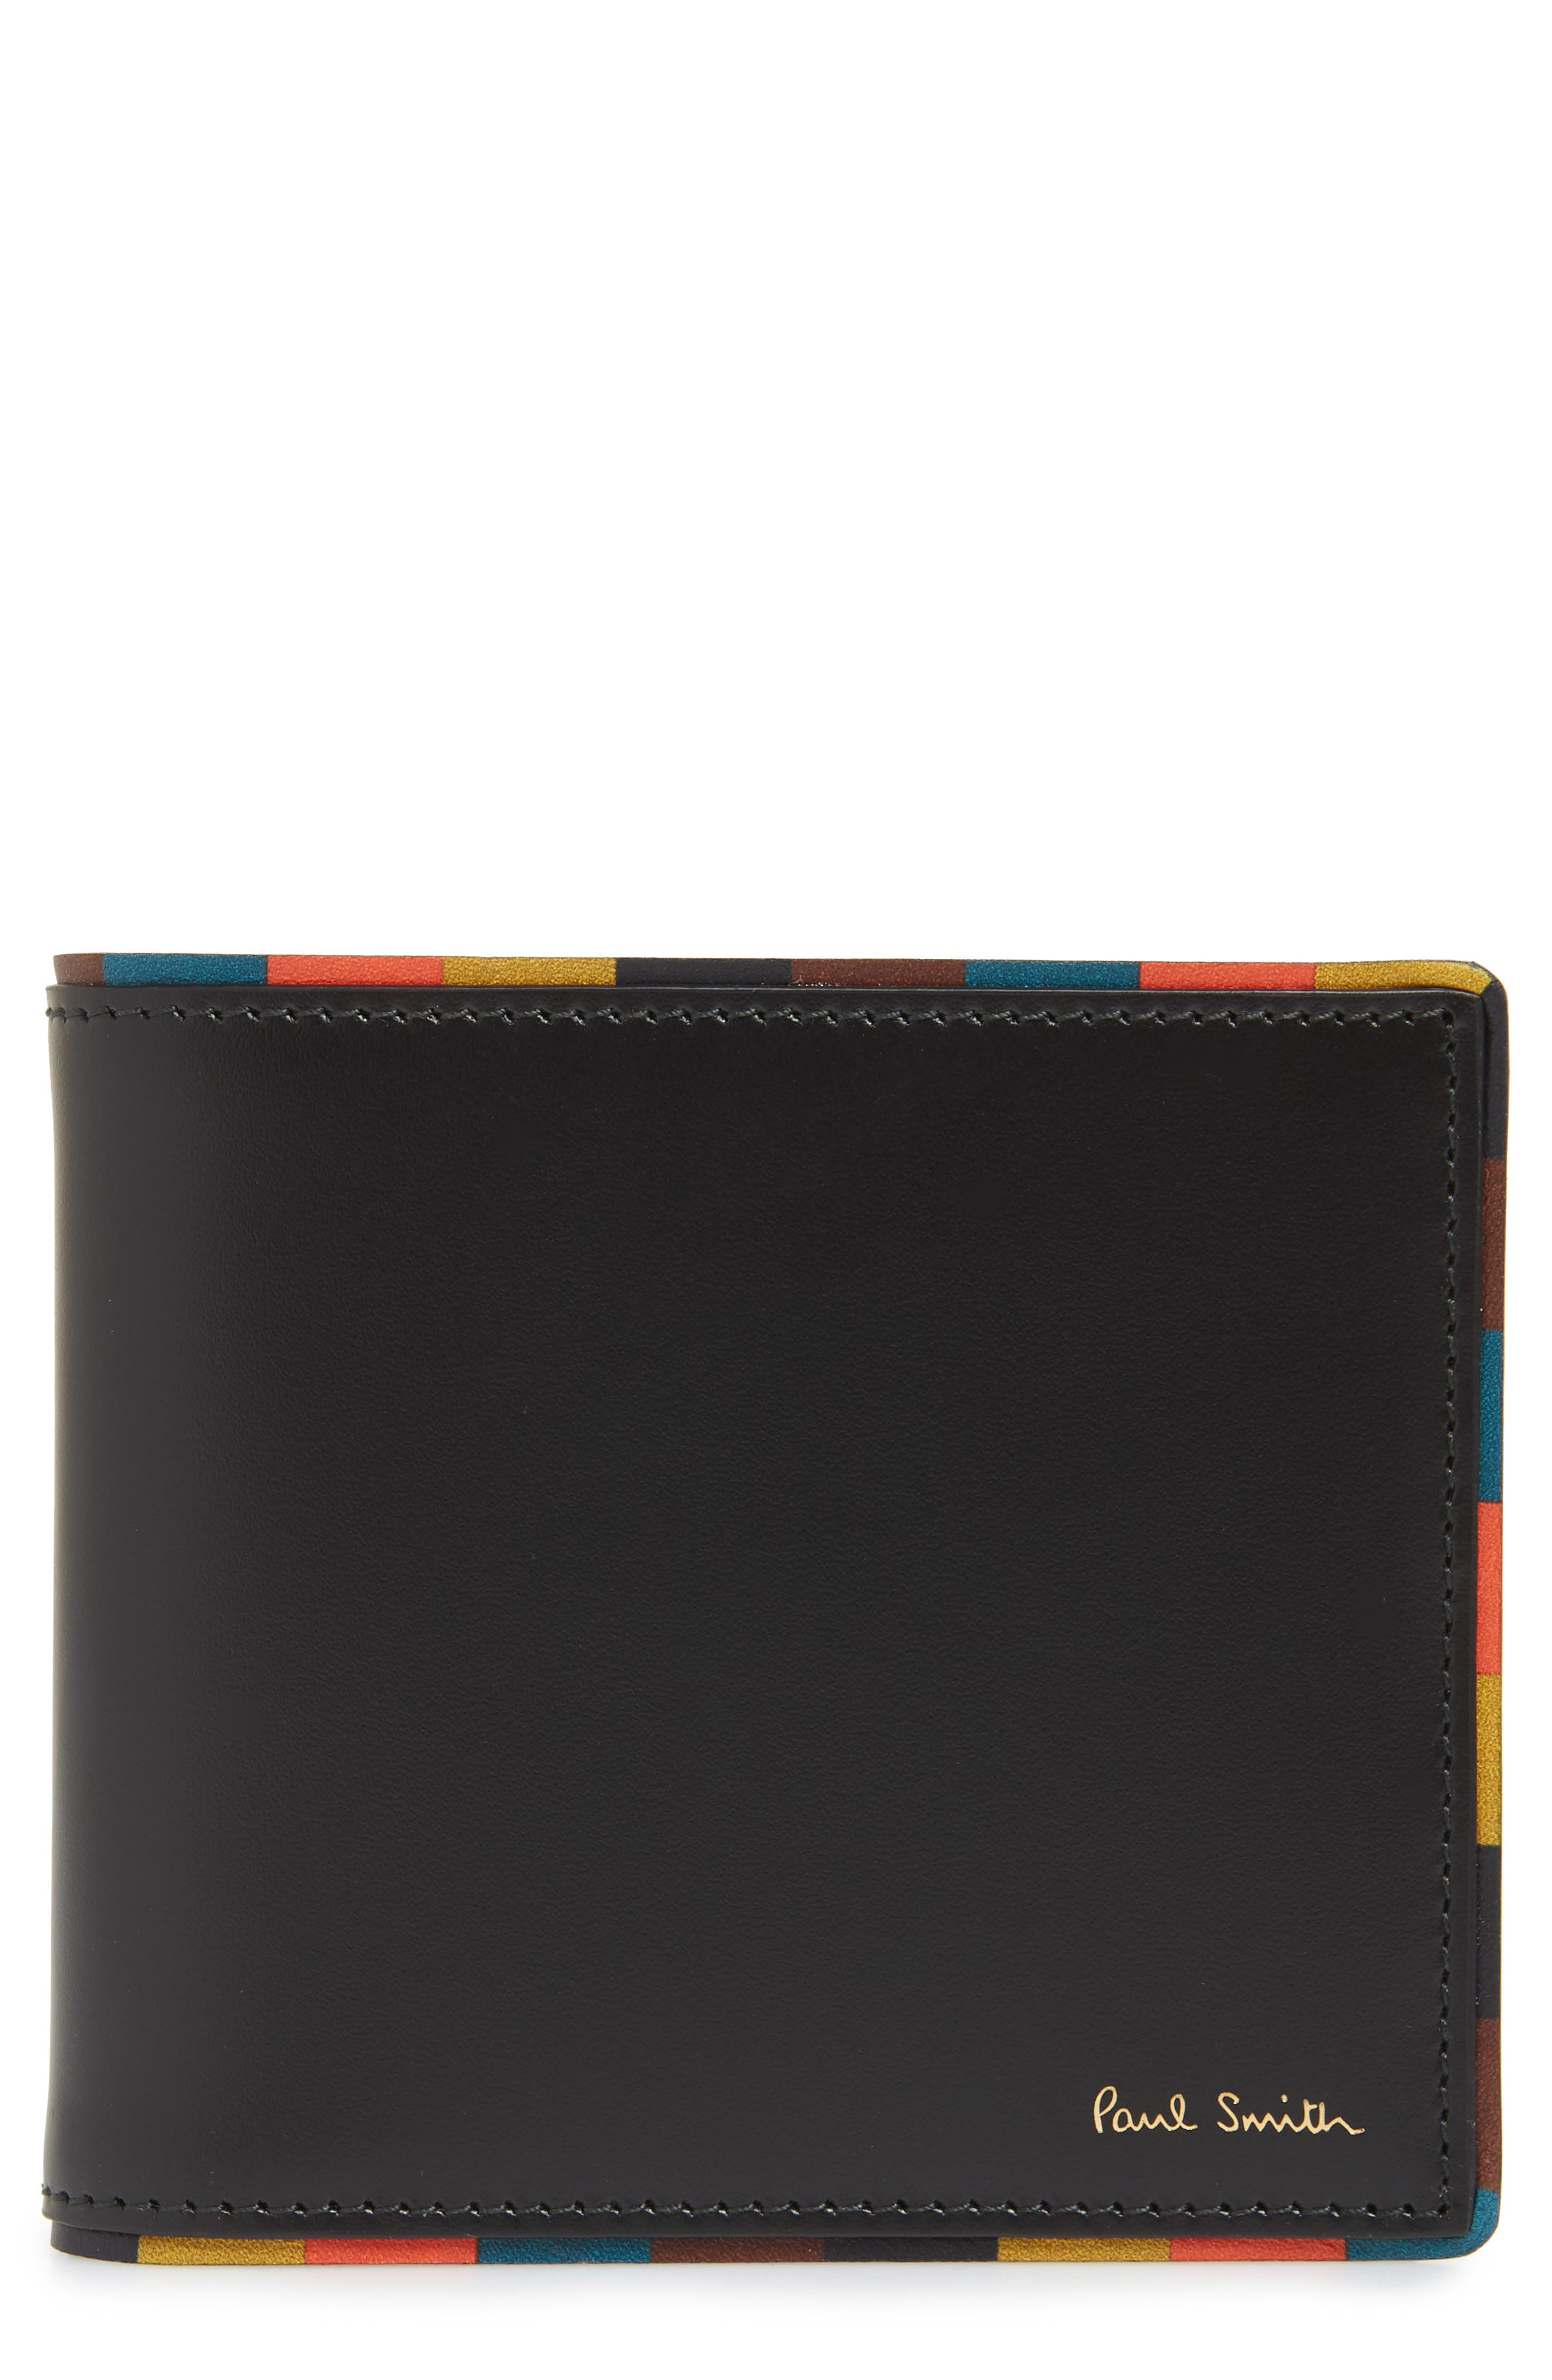 PAUL SMITH,                             Leather Billfold Wallet,                             Main thumbnail 1, color,                             001